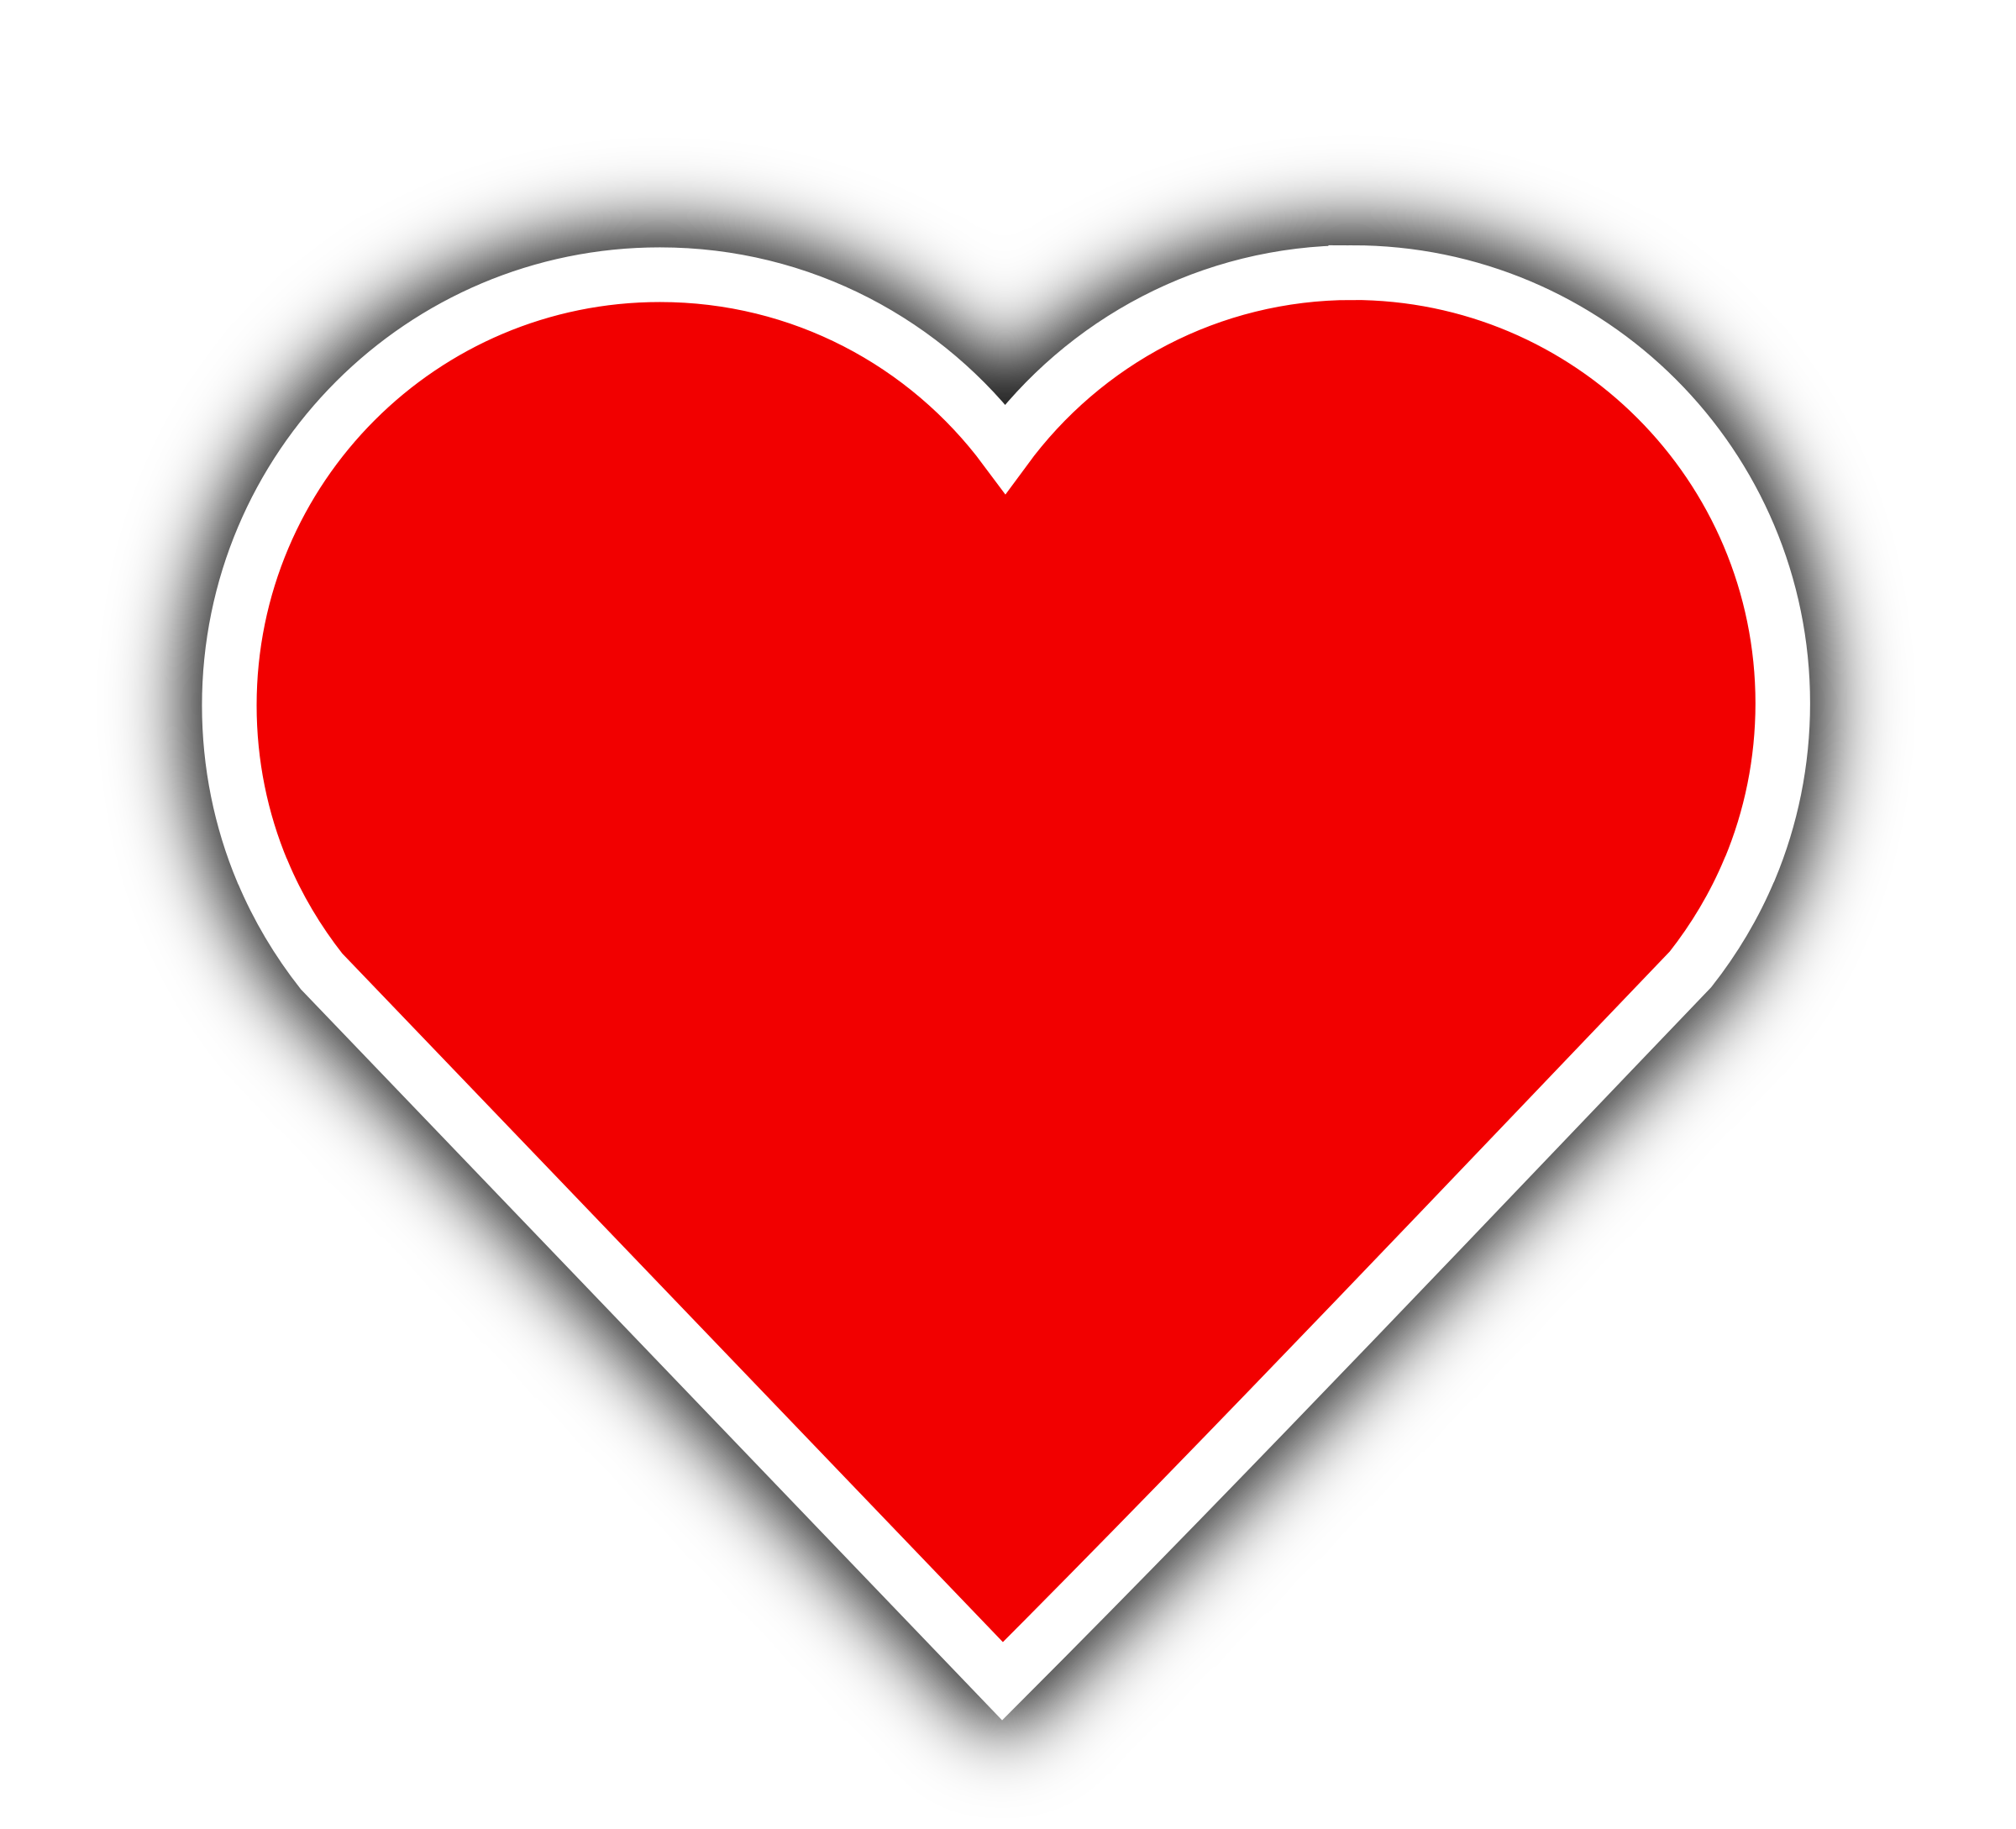 Red heart icon png. Simple icons free and